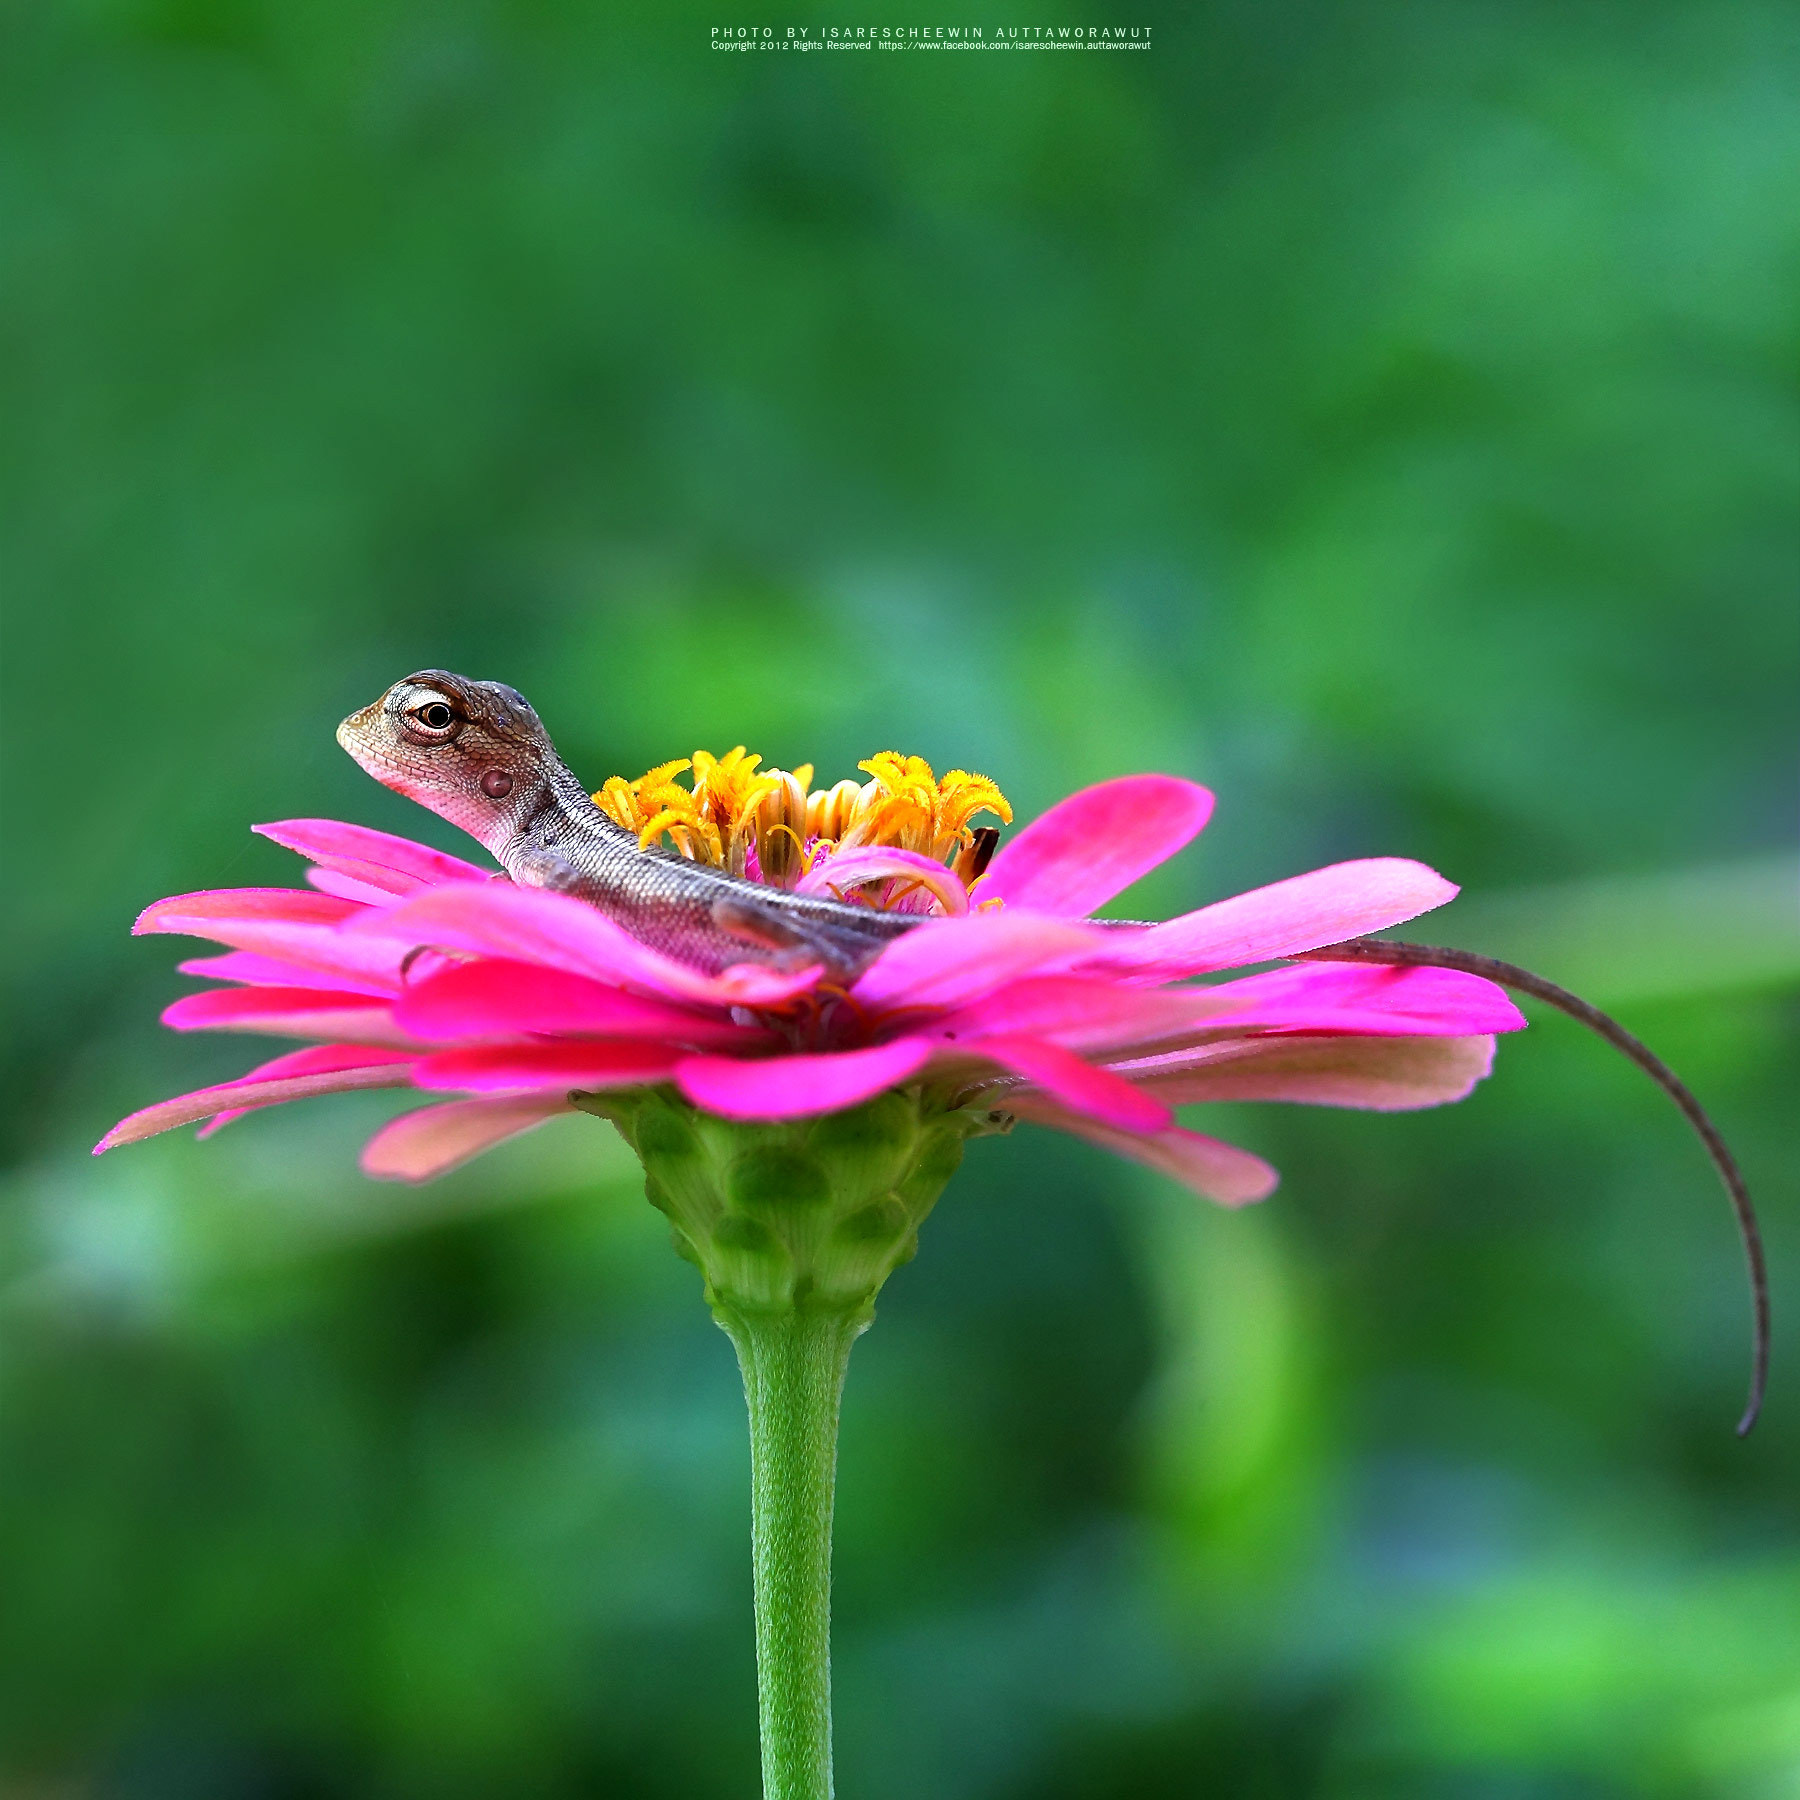 Photograph Thai chameleon on the pink flower by isarescheewin on 500px